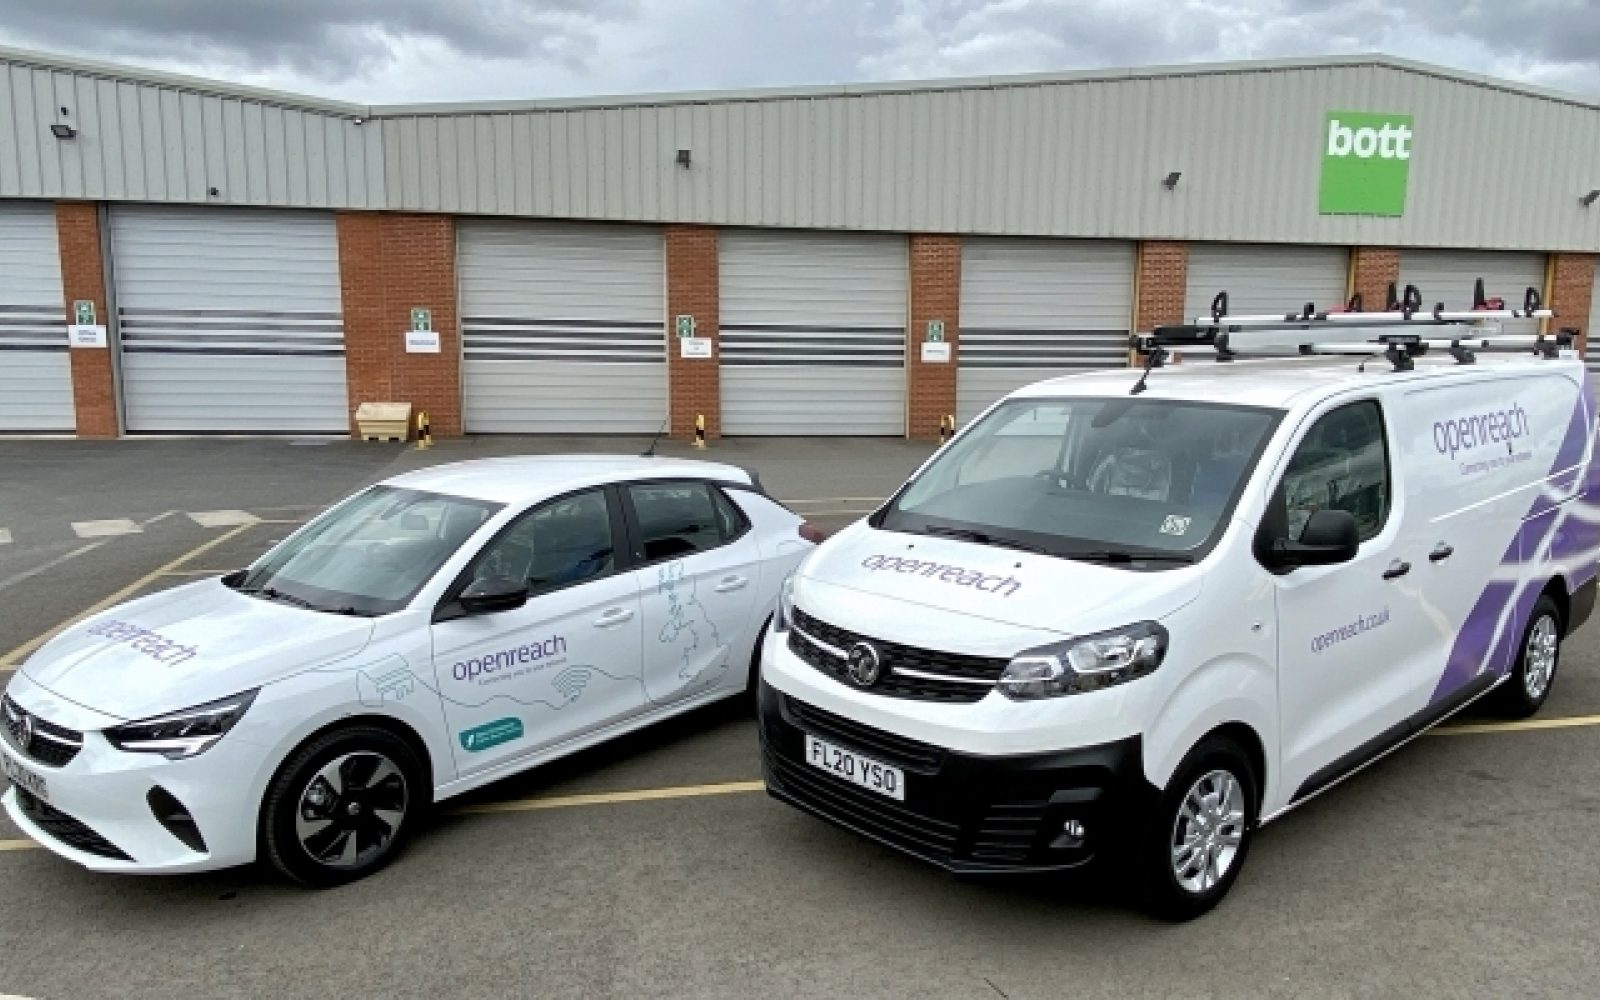 Vauxhall's Vivaro-e vans and Corsa-e cars will join Openreach's fleet. Image: Vauxhall.